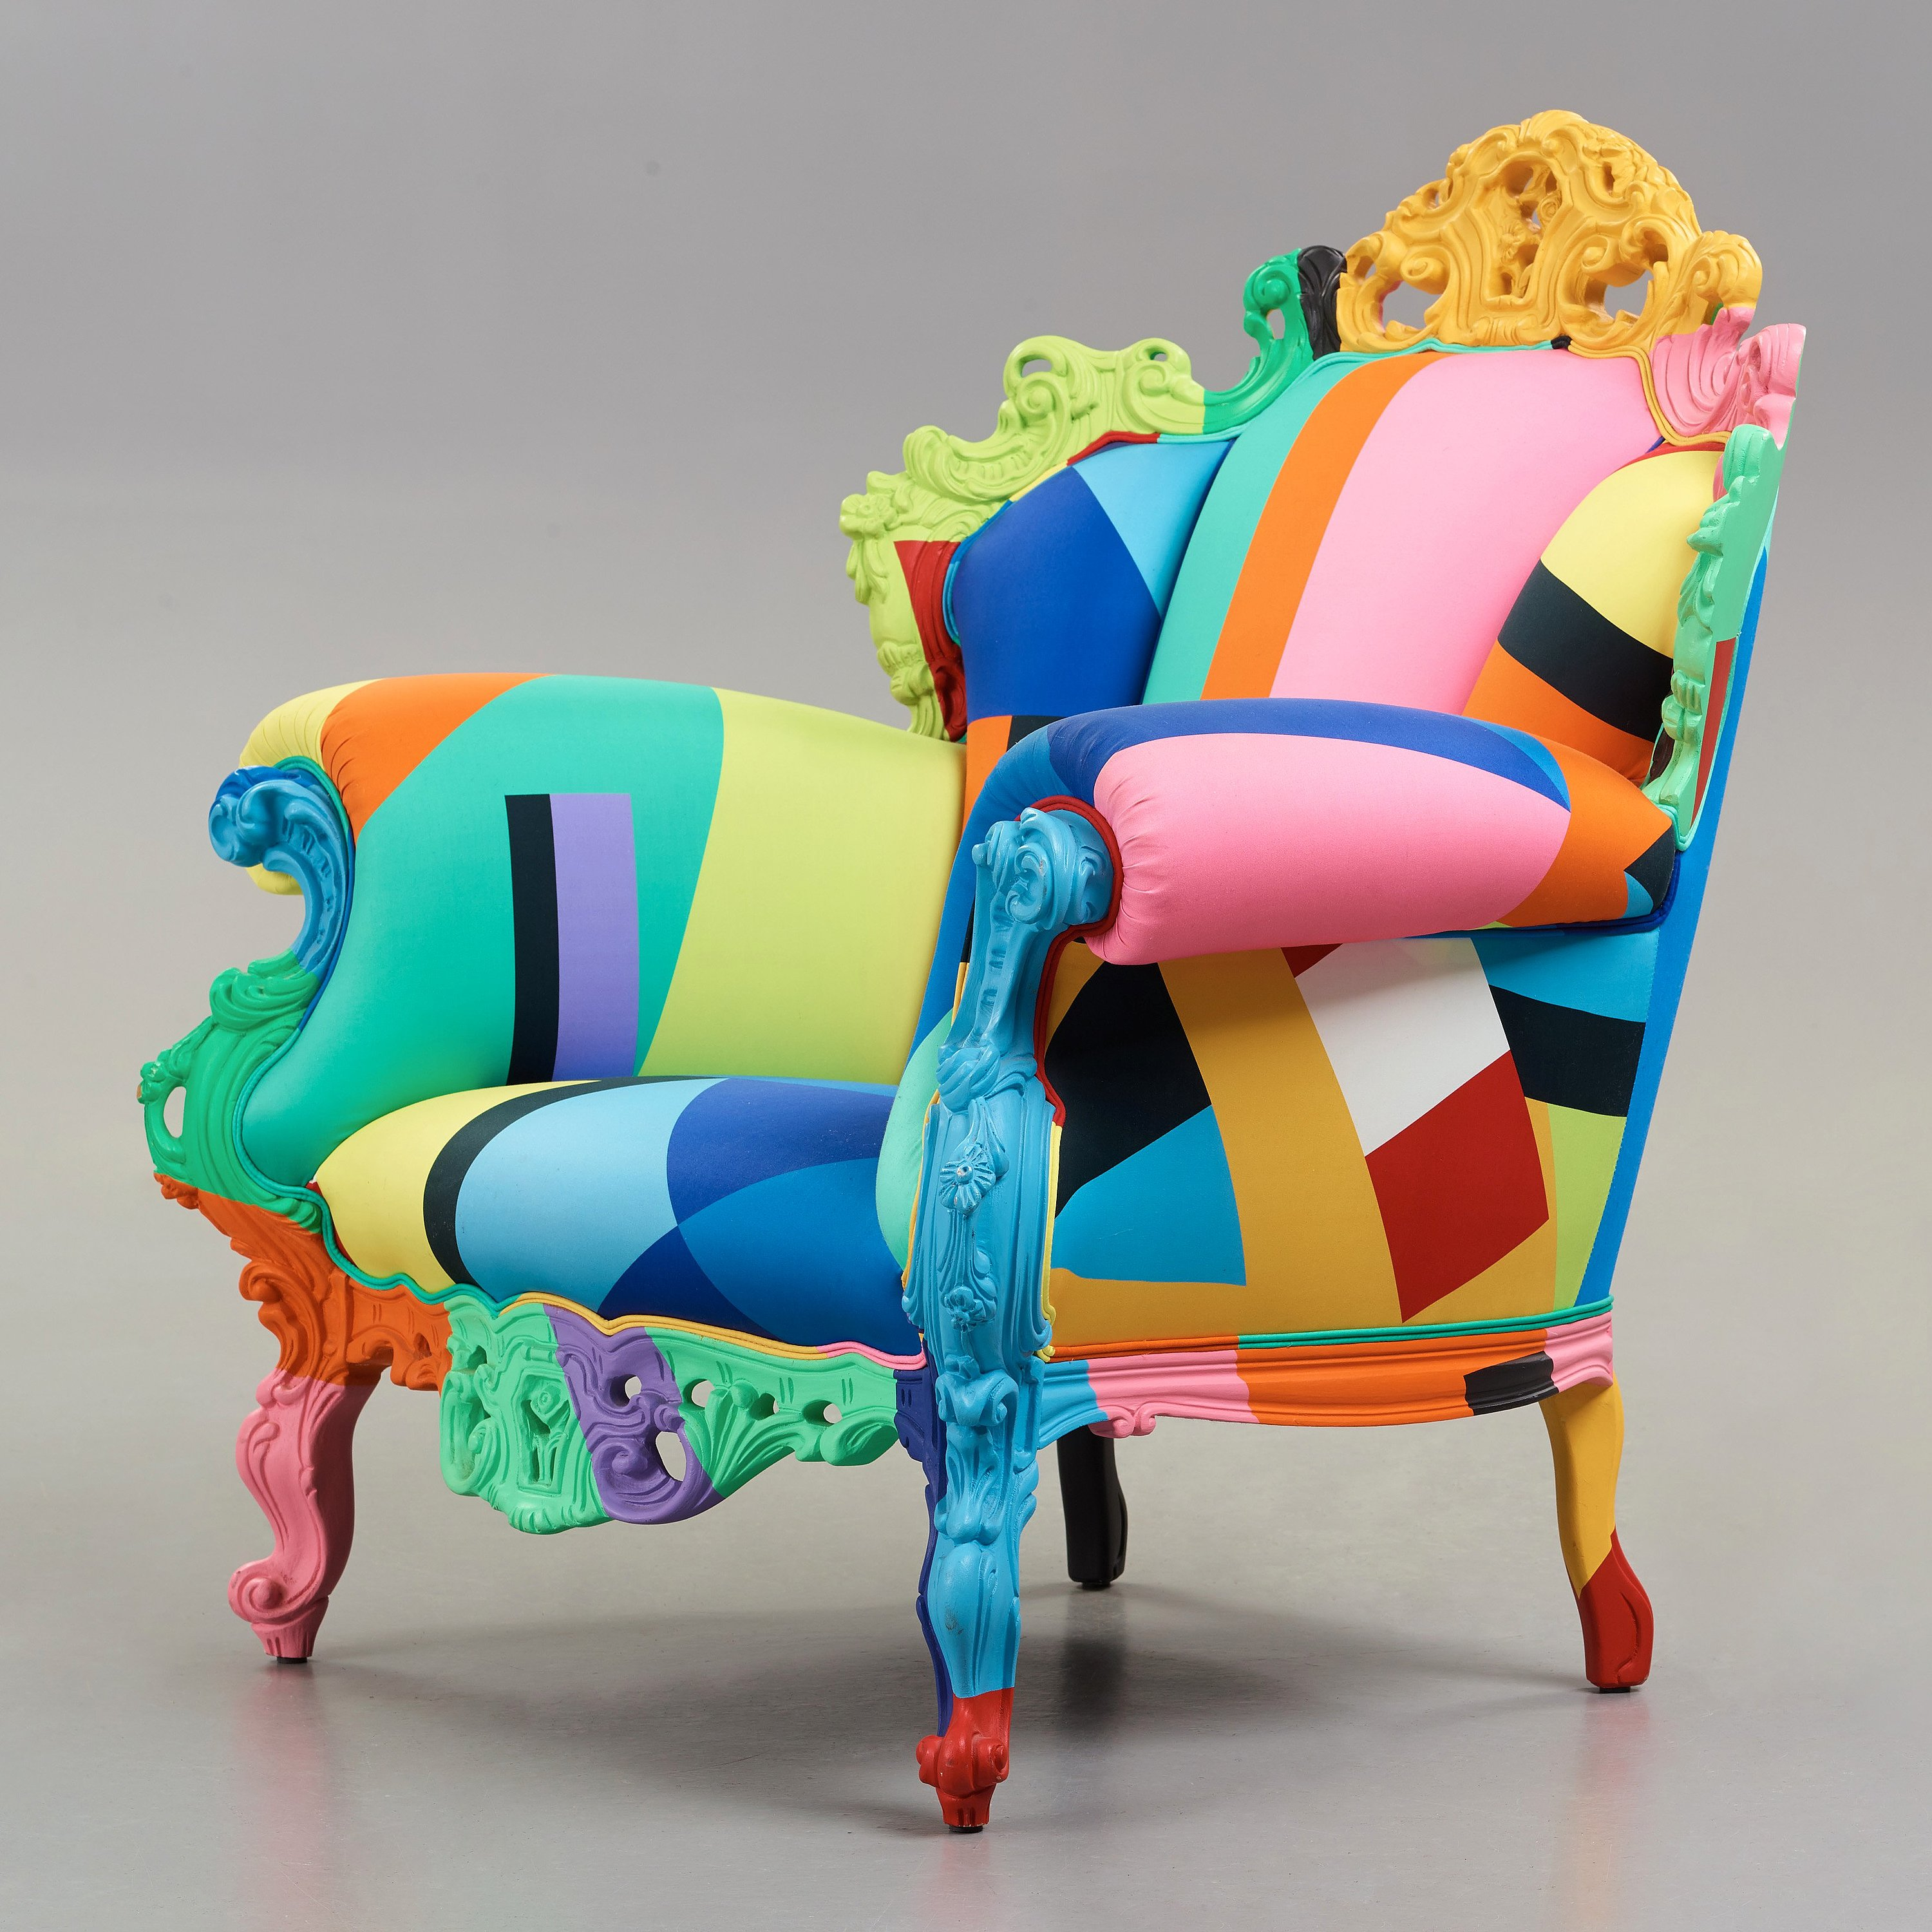 Alessandro Mendini, a 'Proust Geometrica' armchair ...